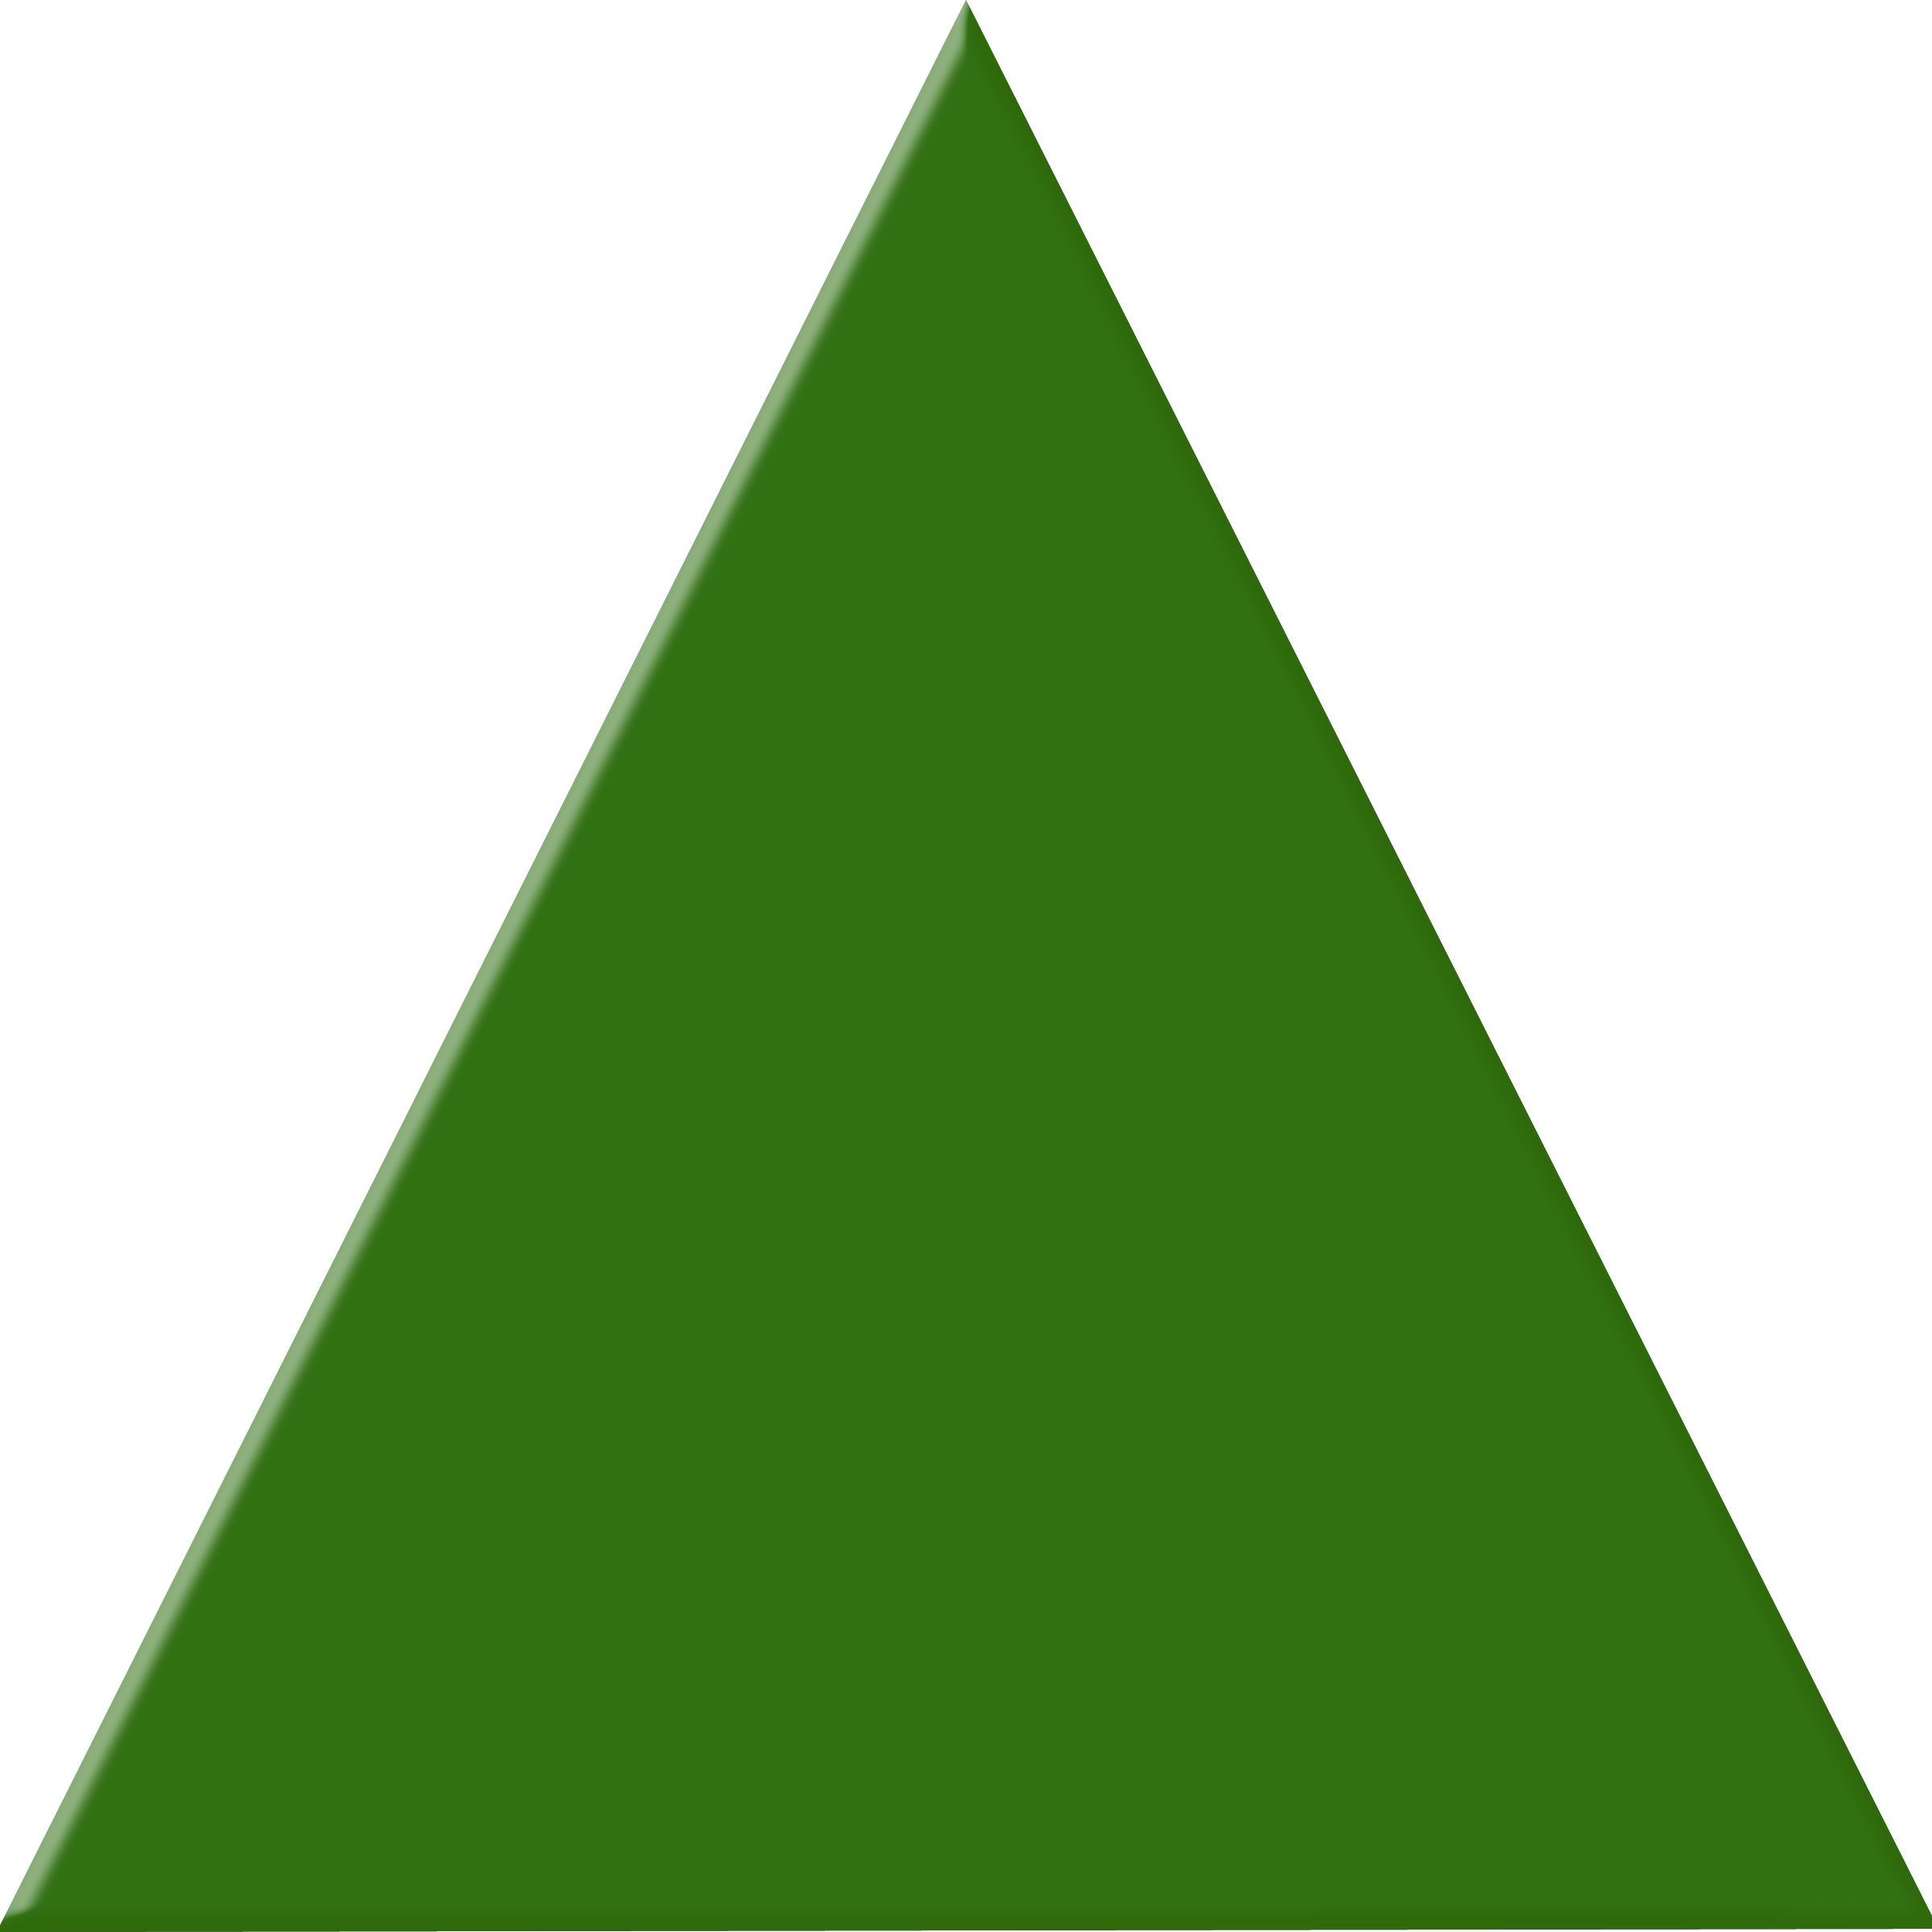 Triangle PNG - 22955